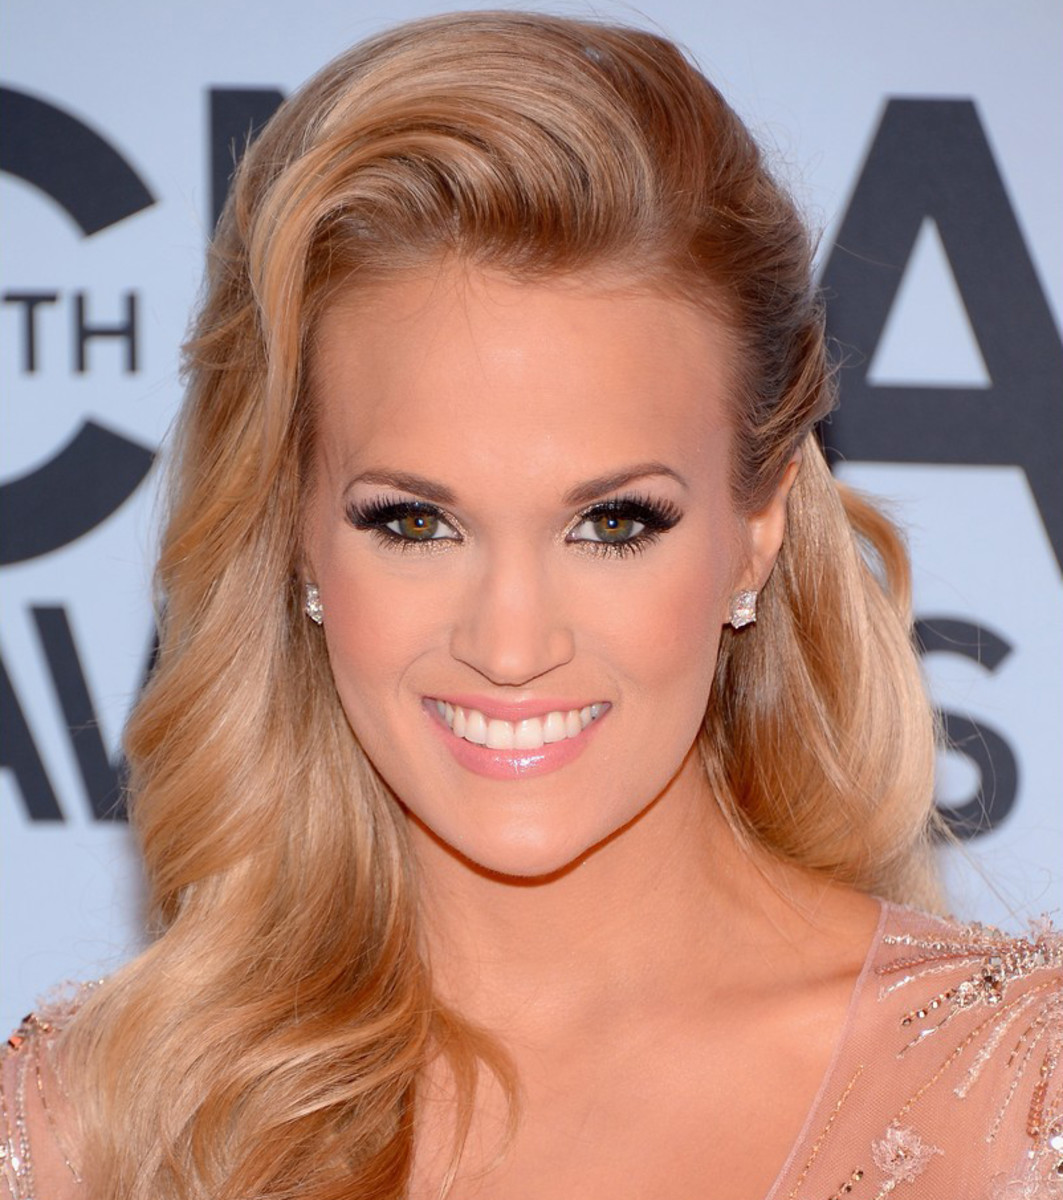 carrie-underwood-cma-awards-2013